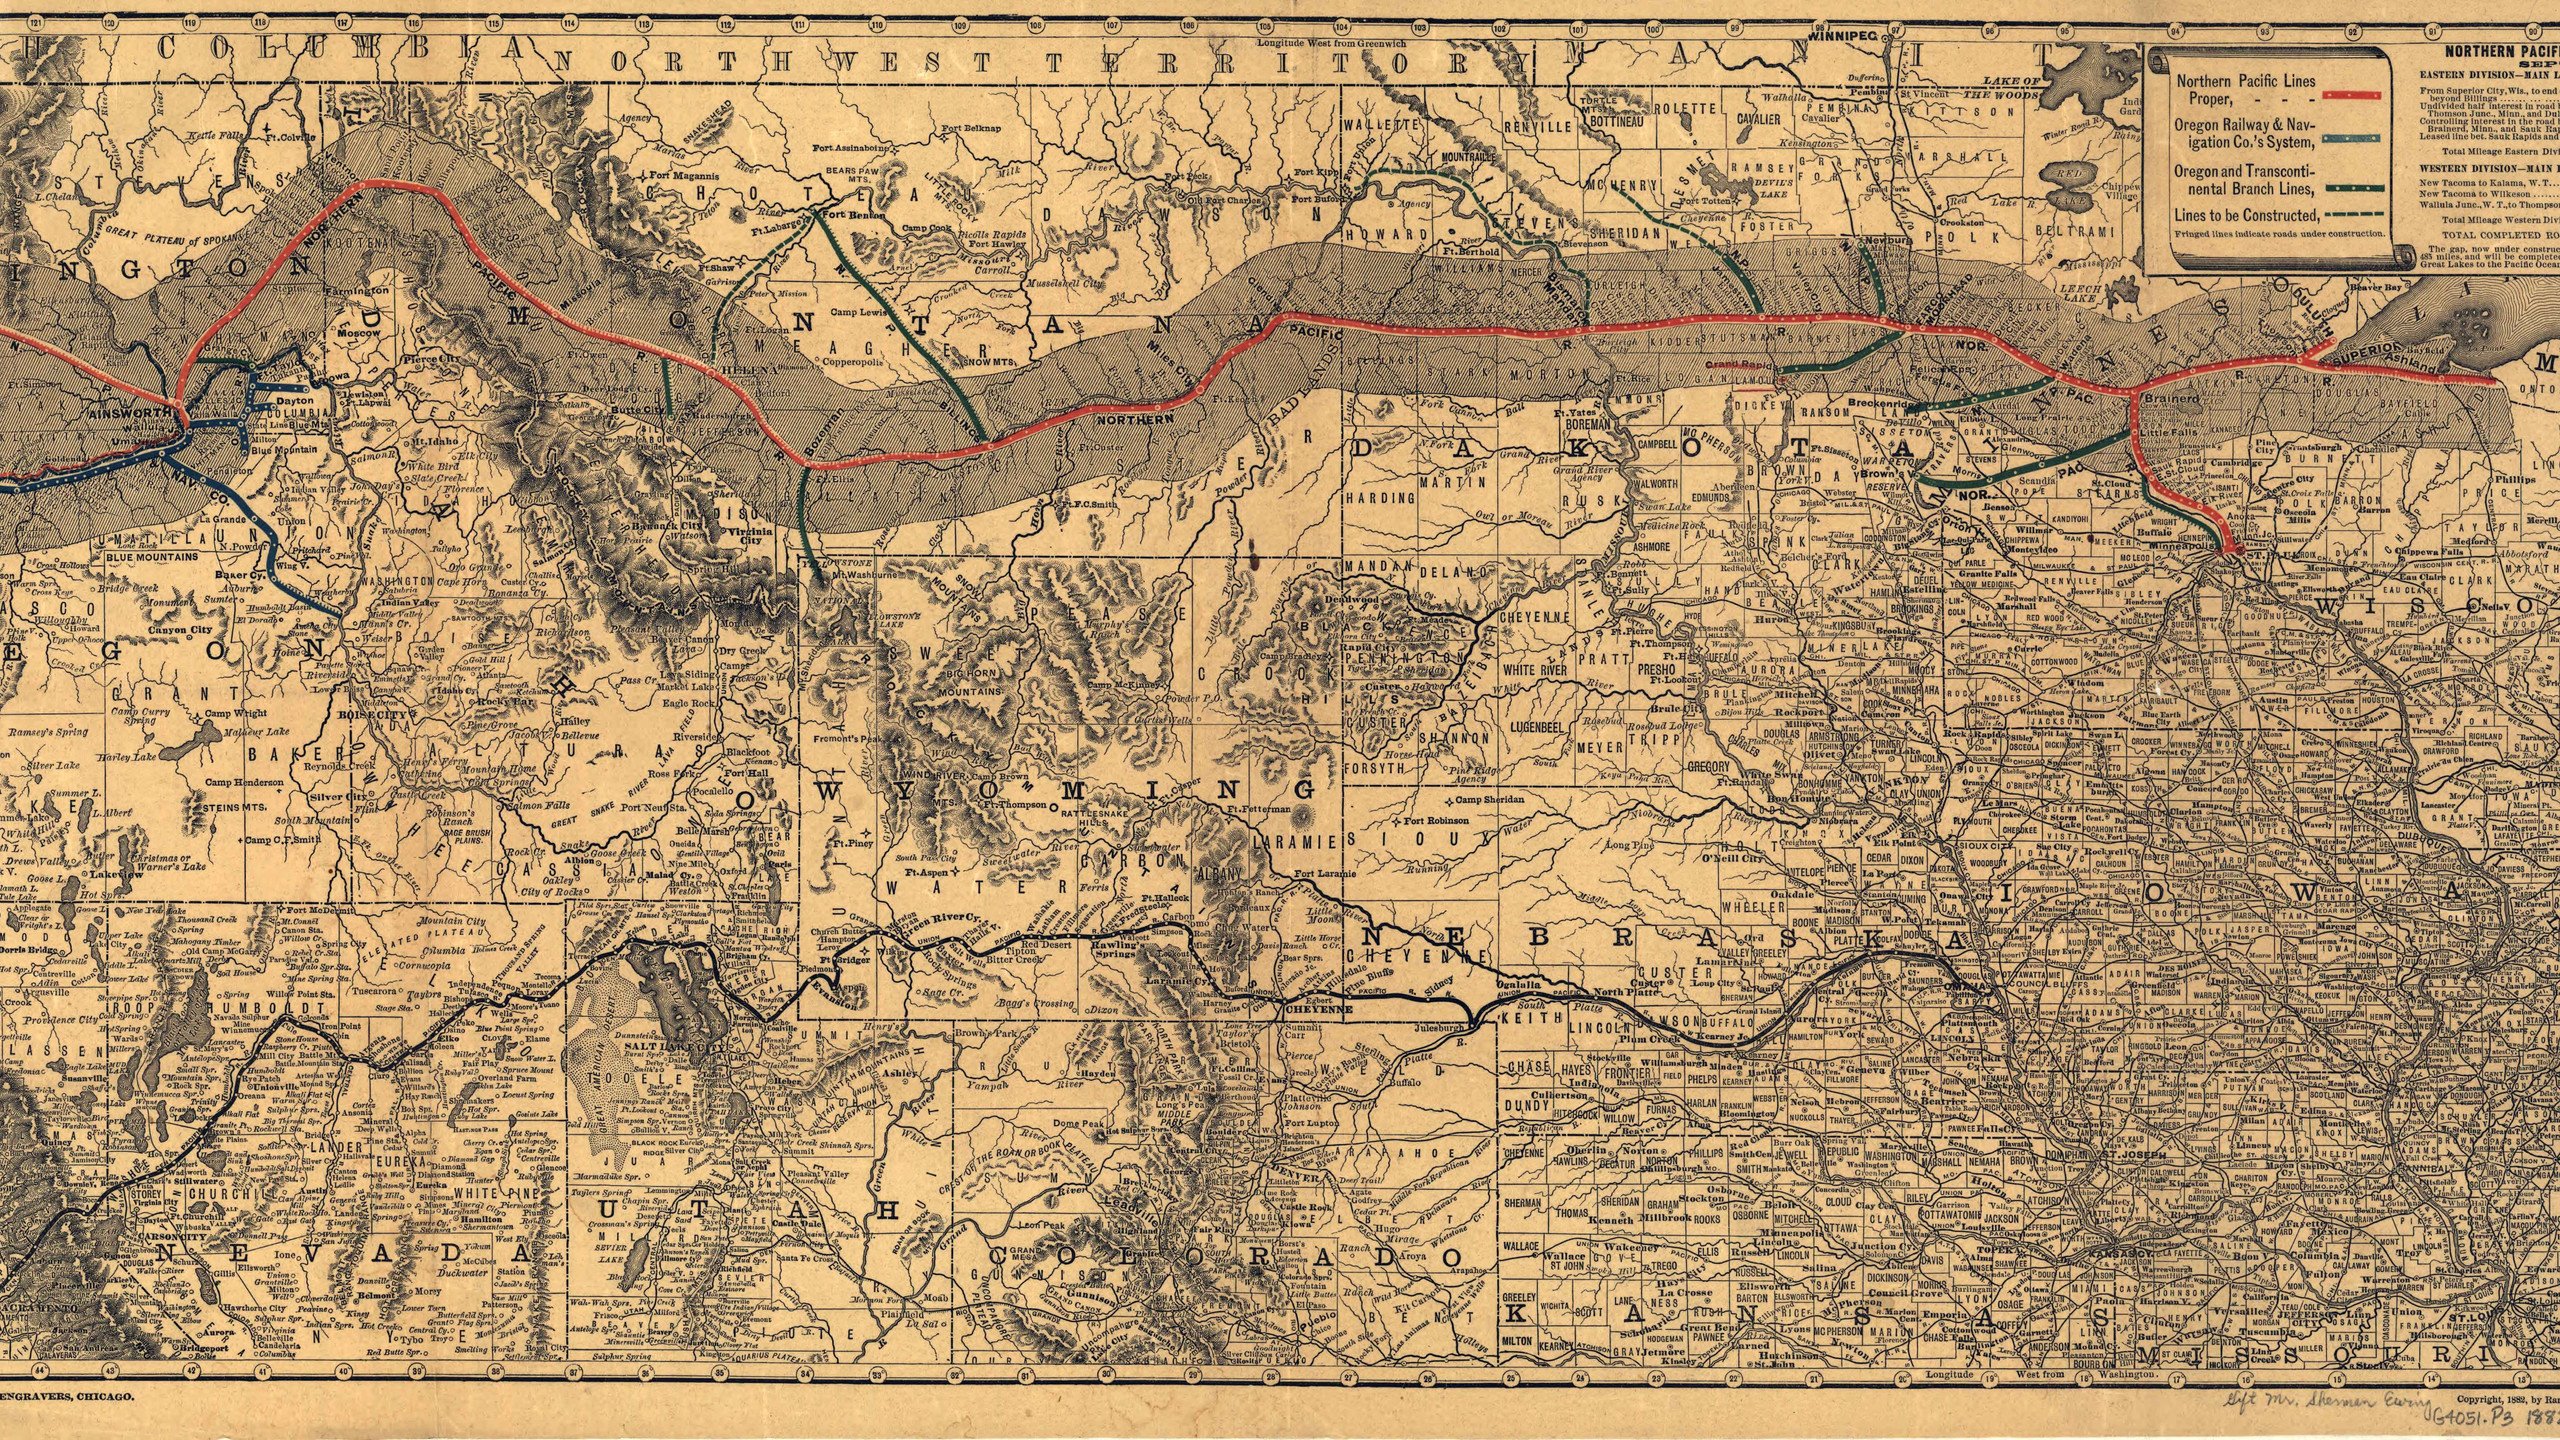 Northern Pacific Railroad Co. Map